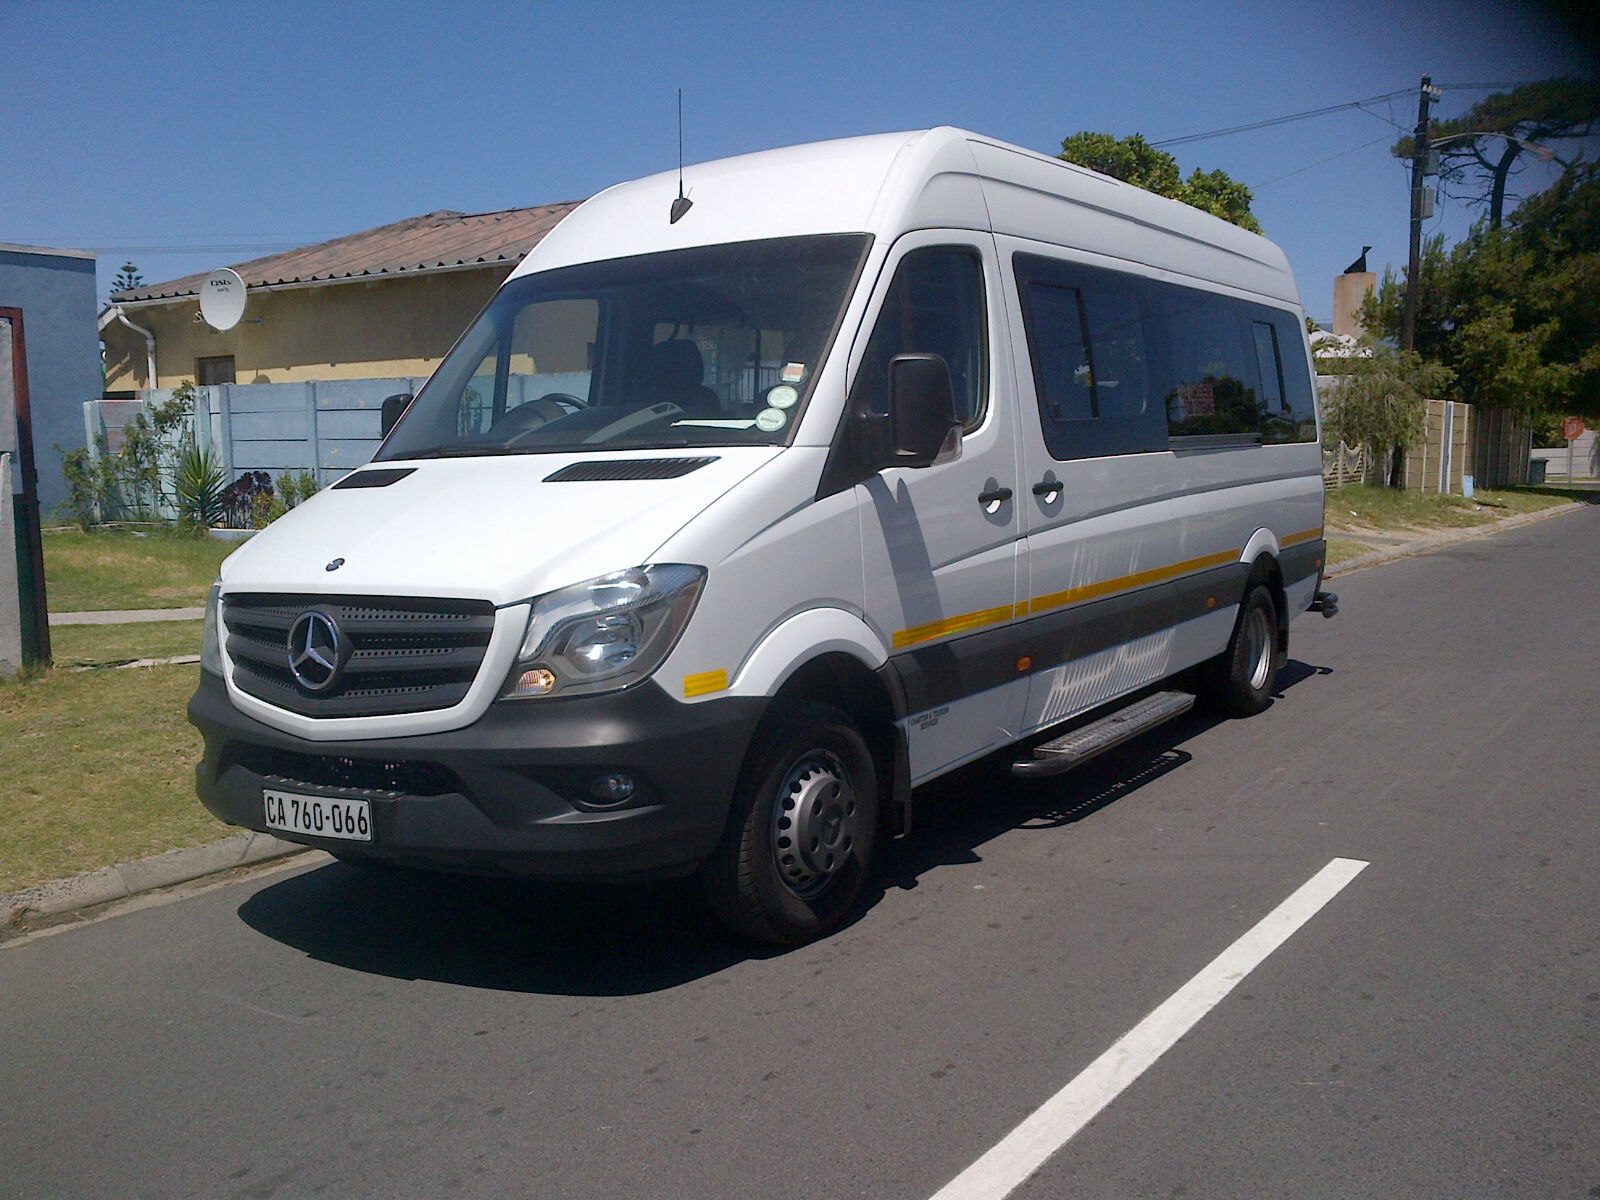 22 seater vehicle with driver.